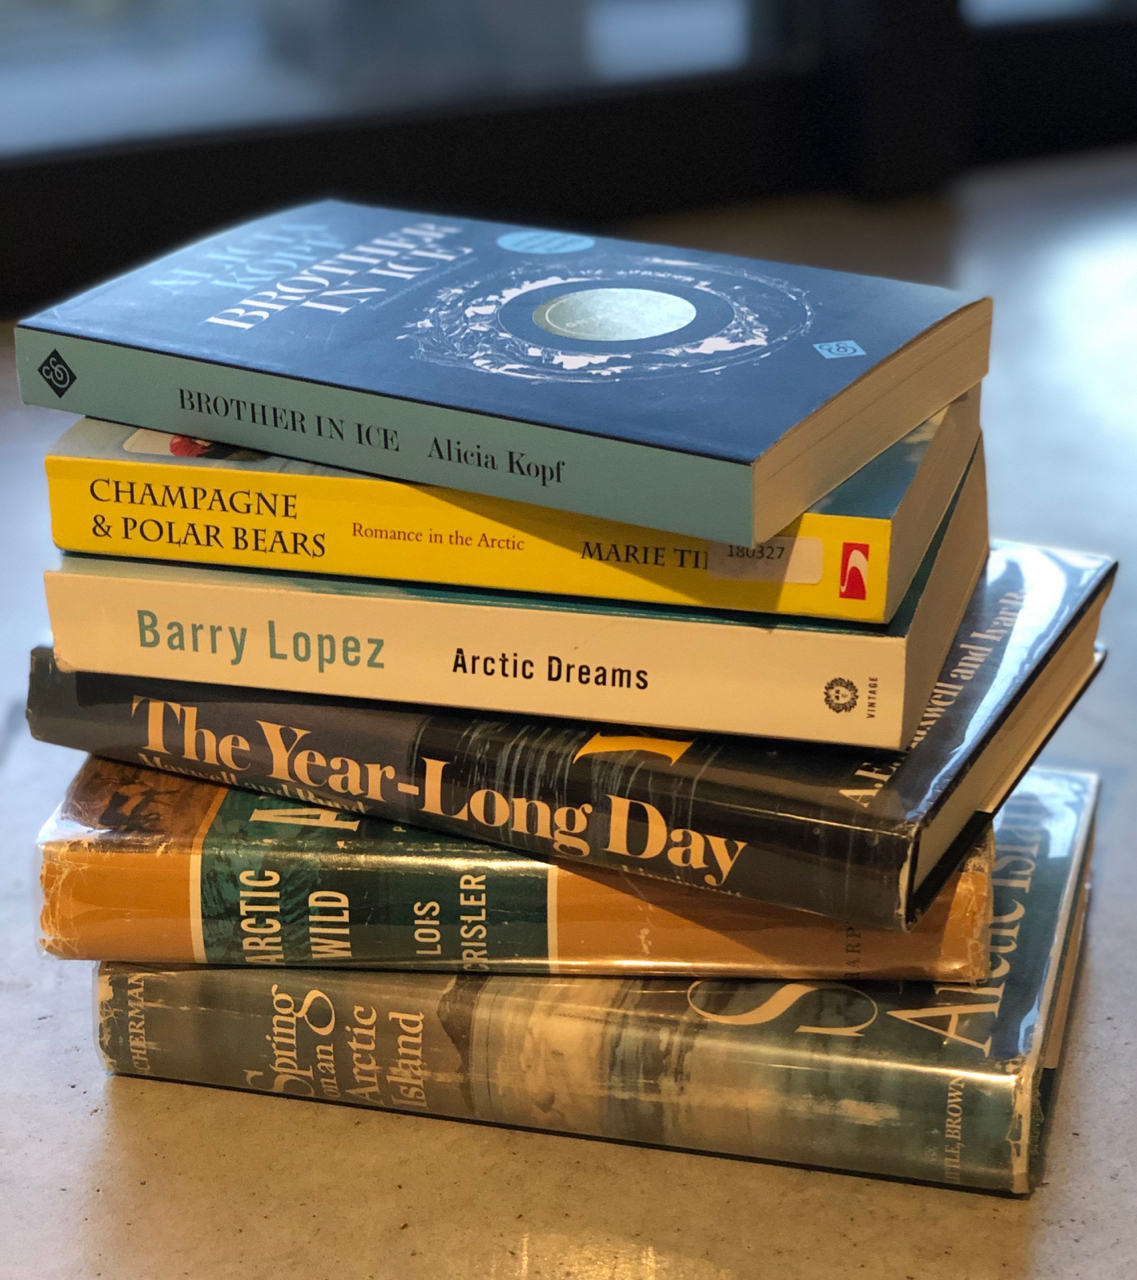 A swarm of books about the Arctic